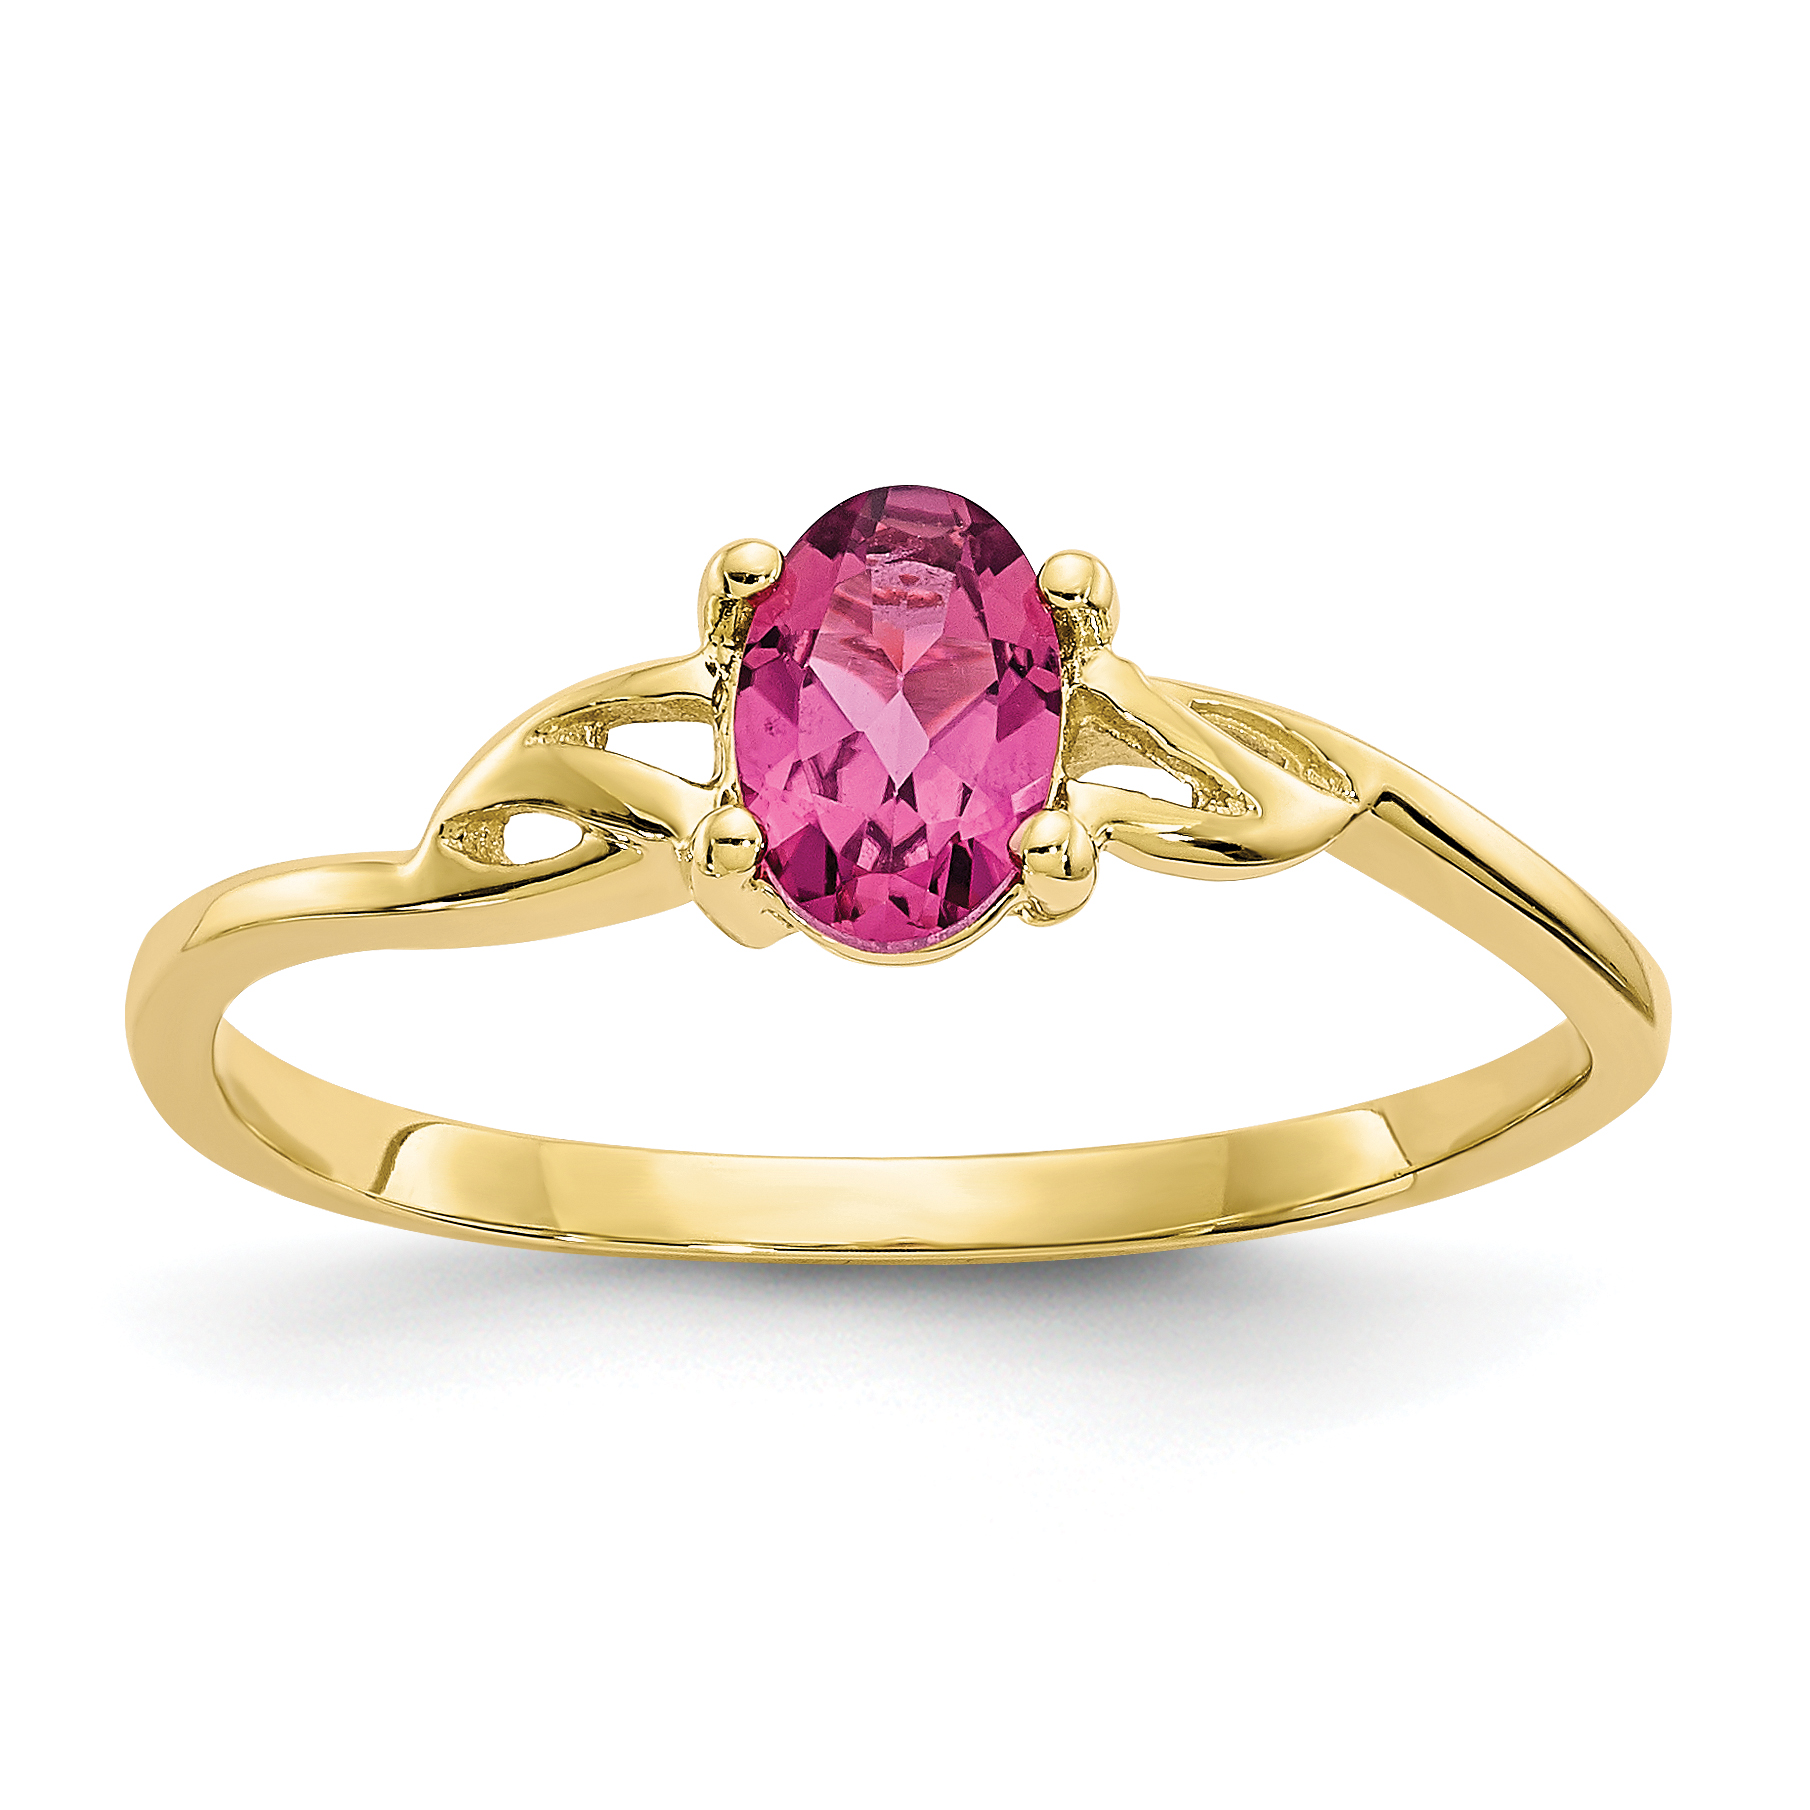 10k Polished Geniune Pink Tourmaline Birthstone Ring by Saris and Things QG